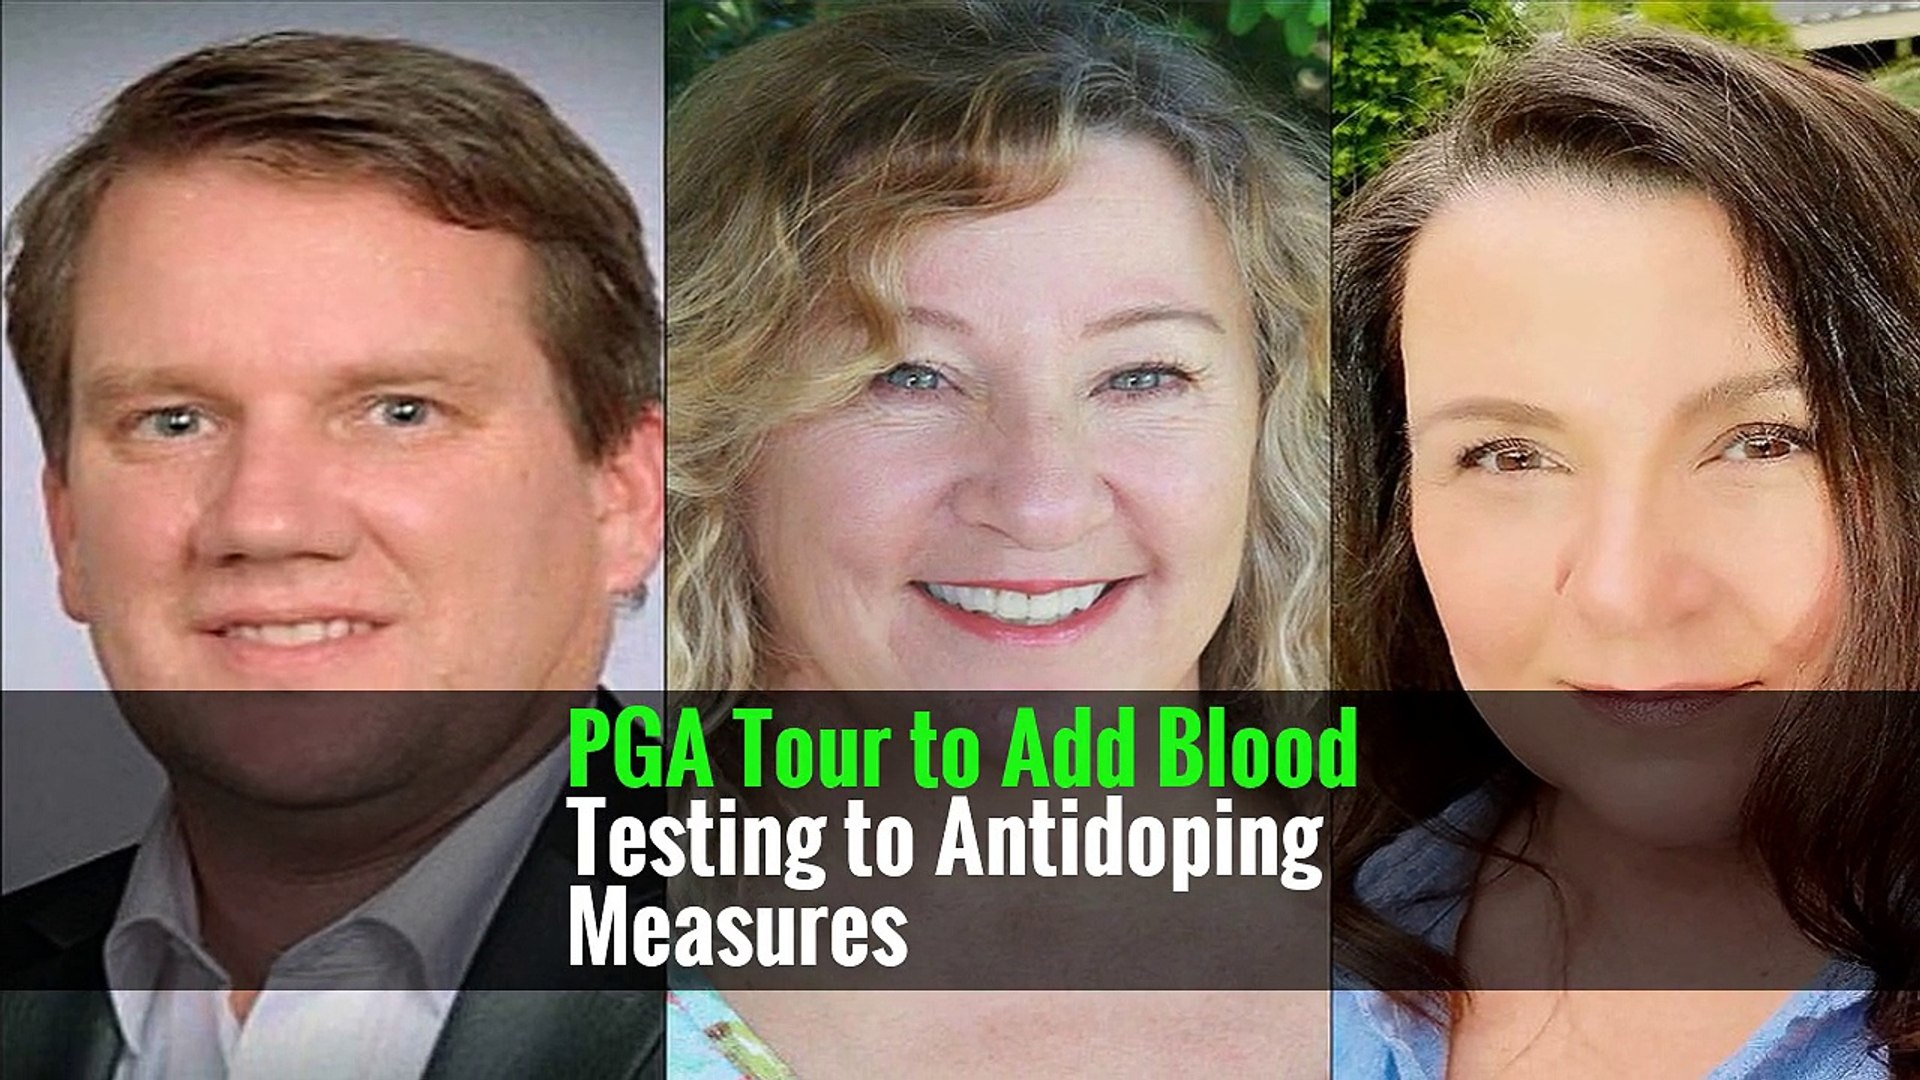 PGA Tour to Add Blood Testing to Antidoping Measures